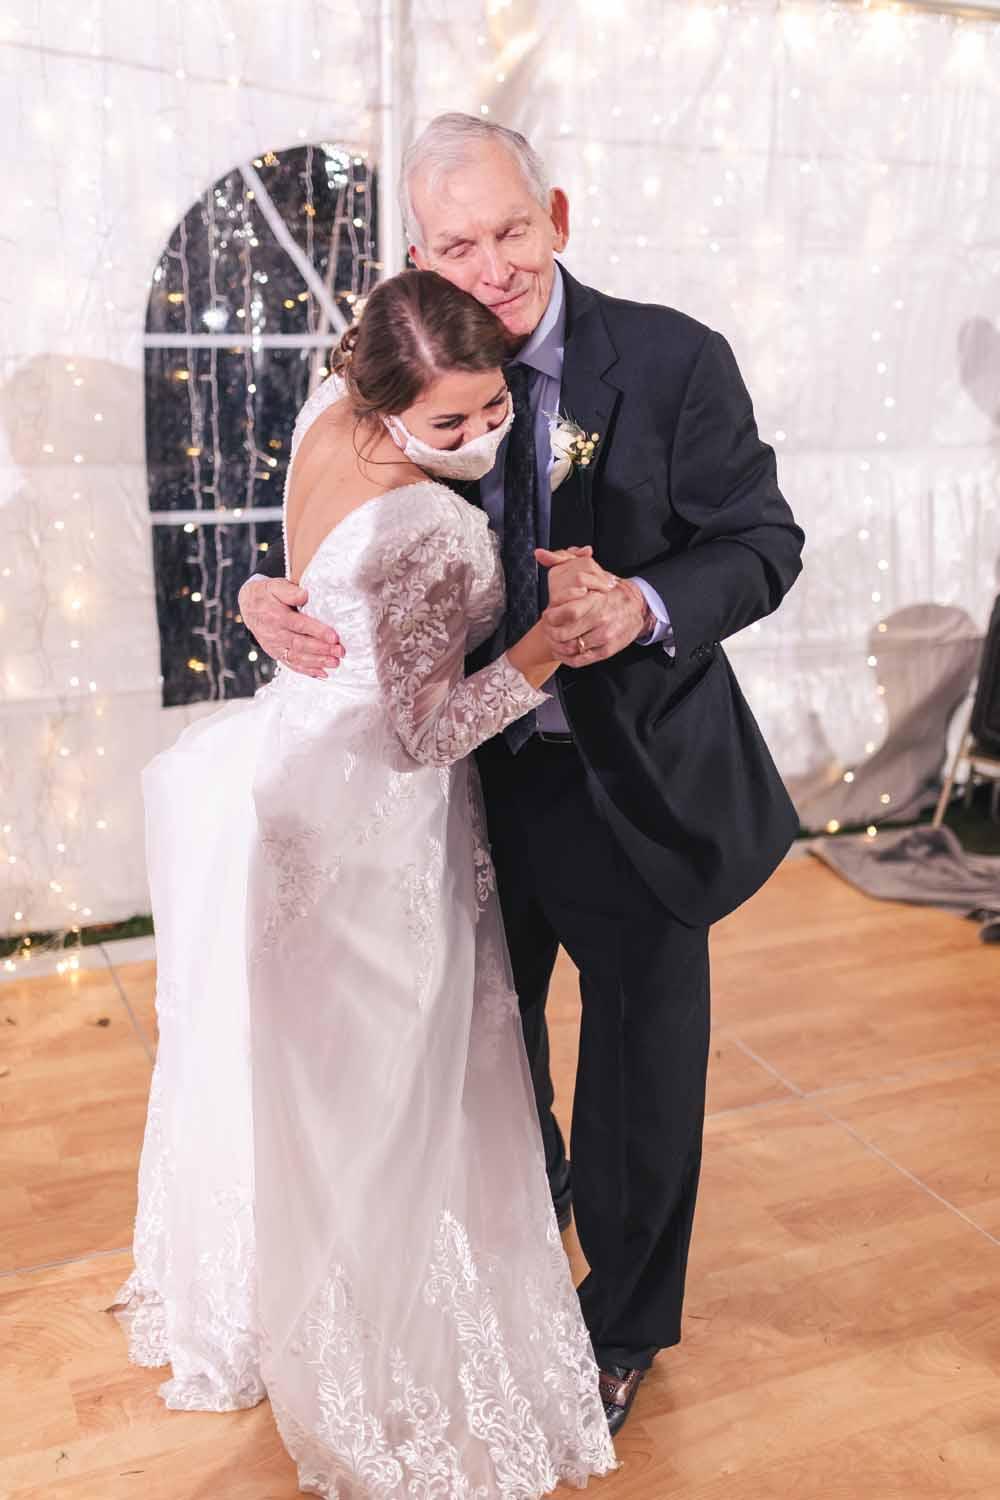 Bride dancing with her grandfather at wedding reception